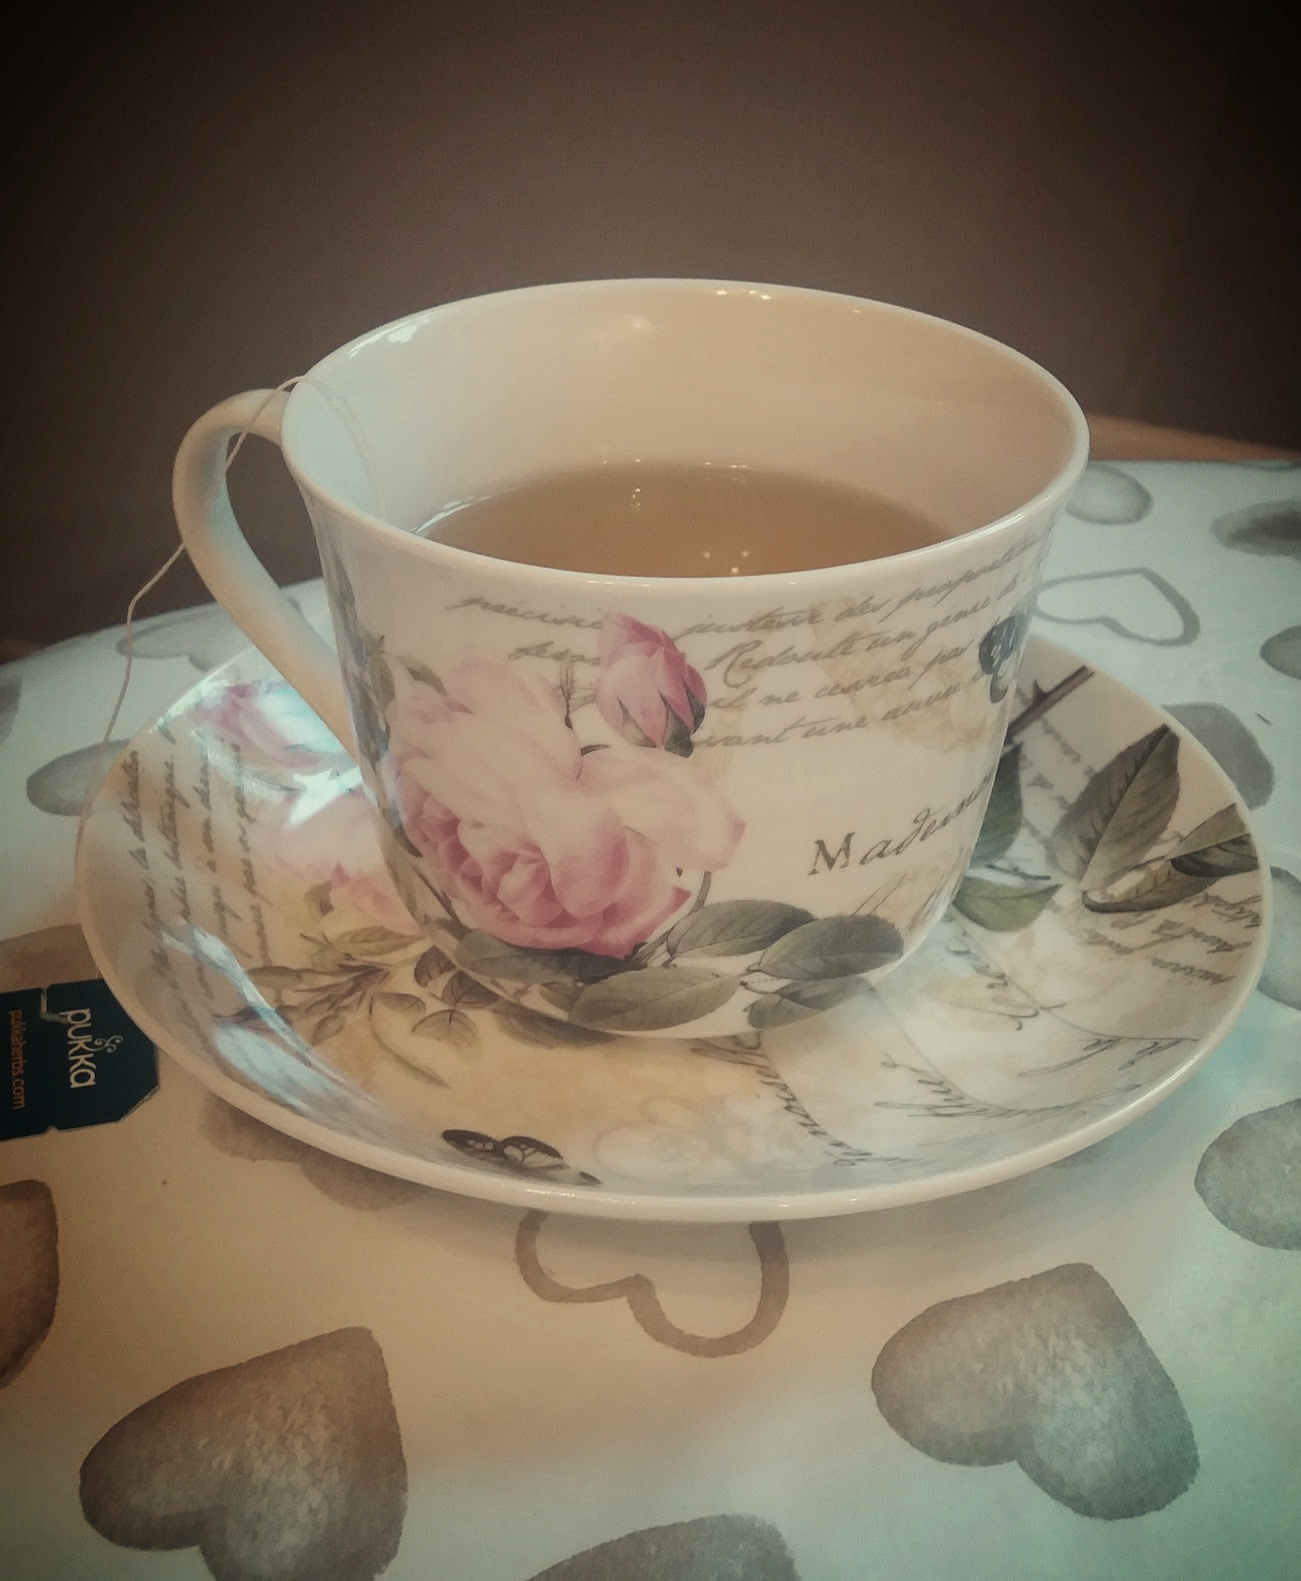 A cup of calm